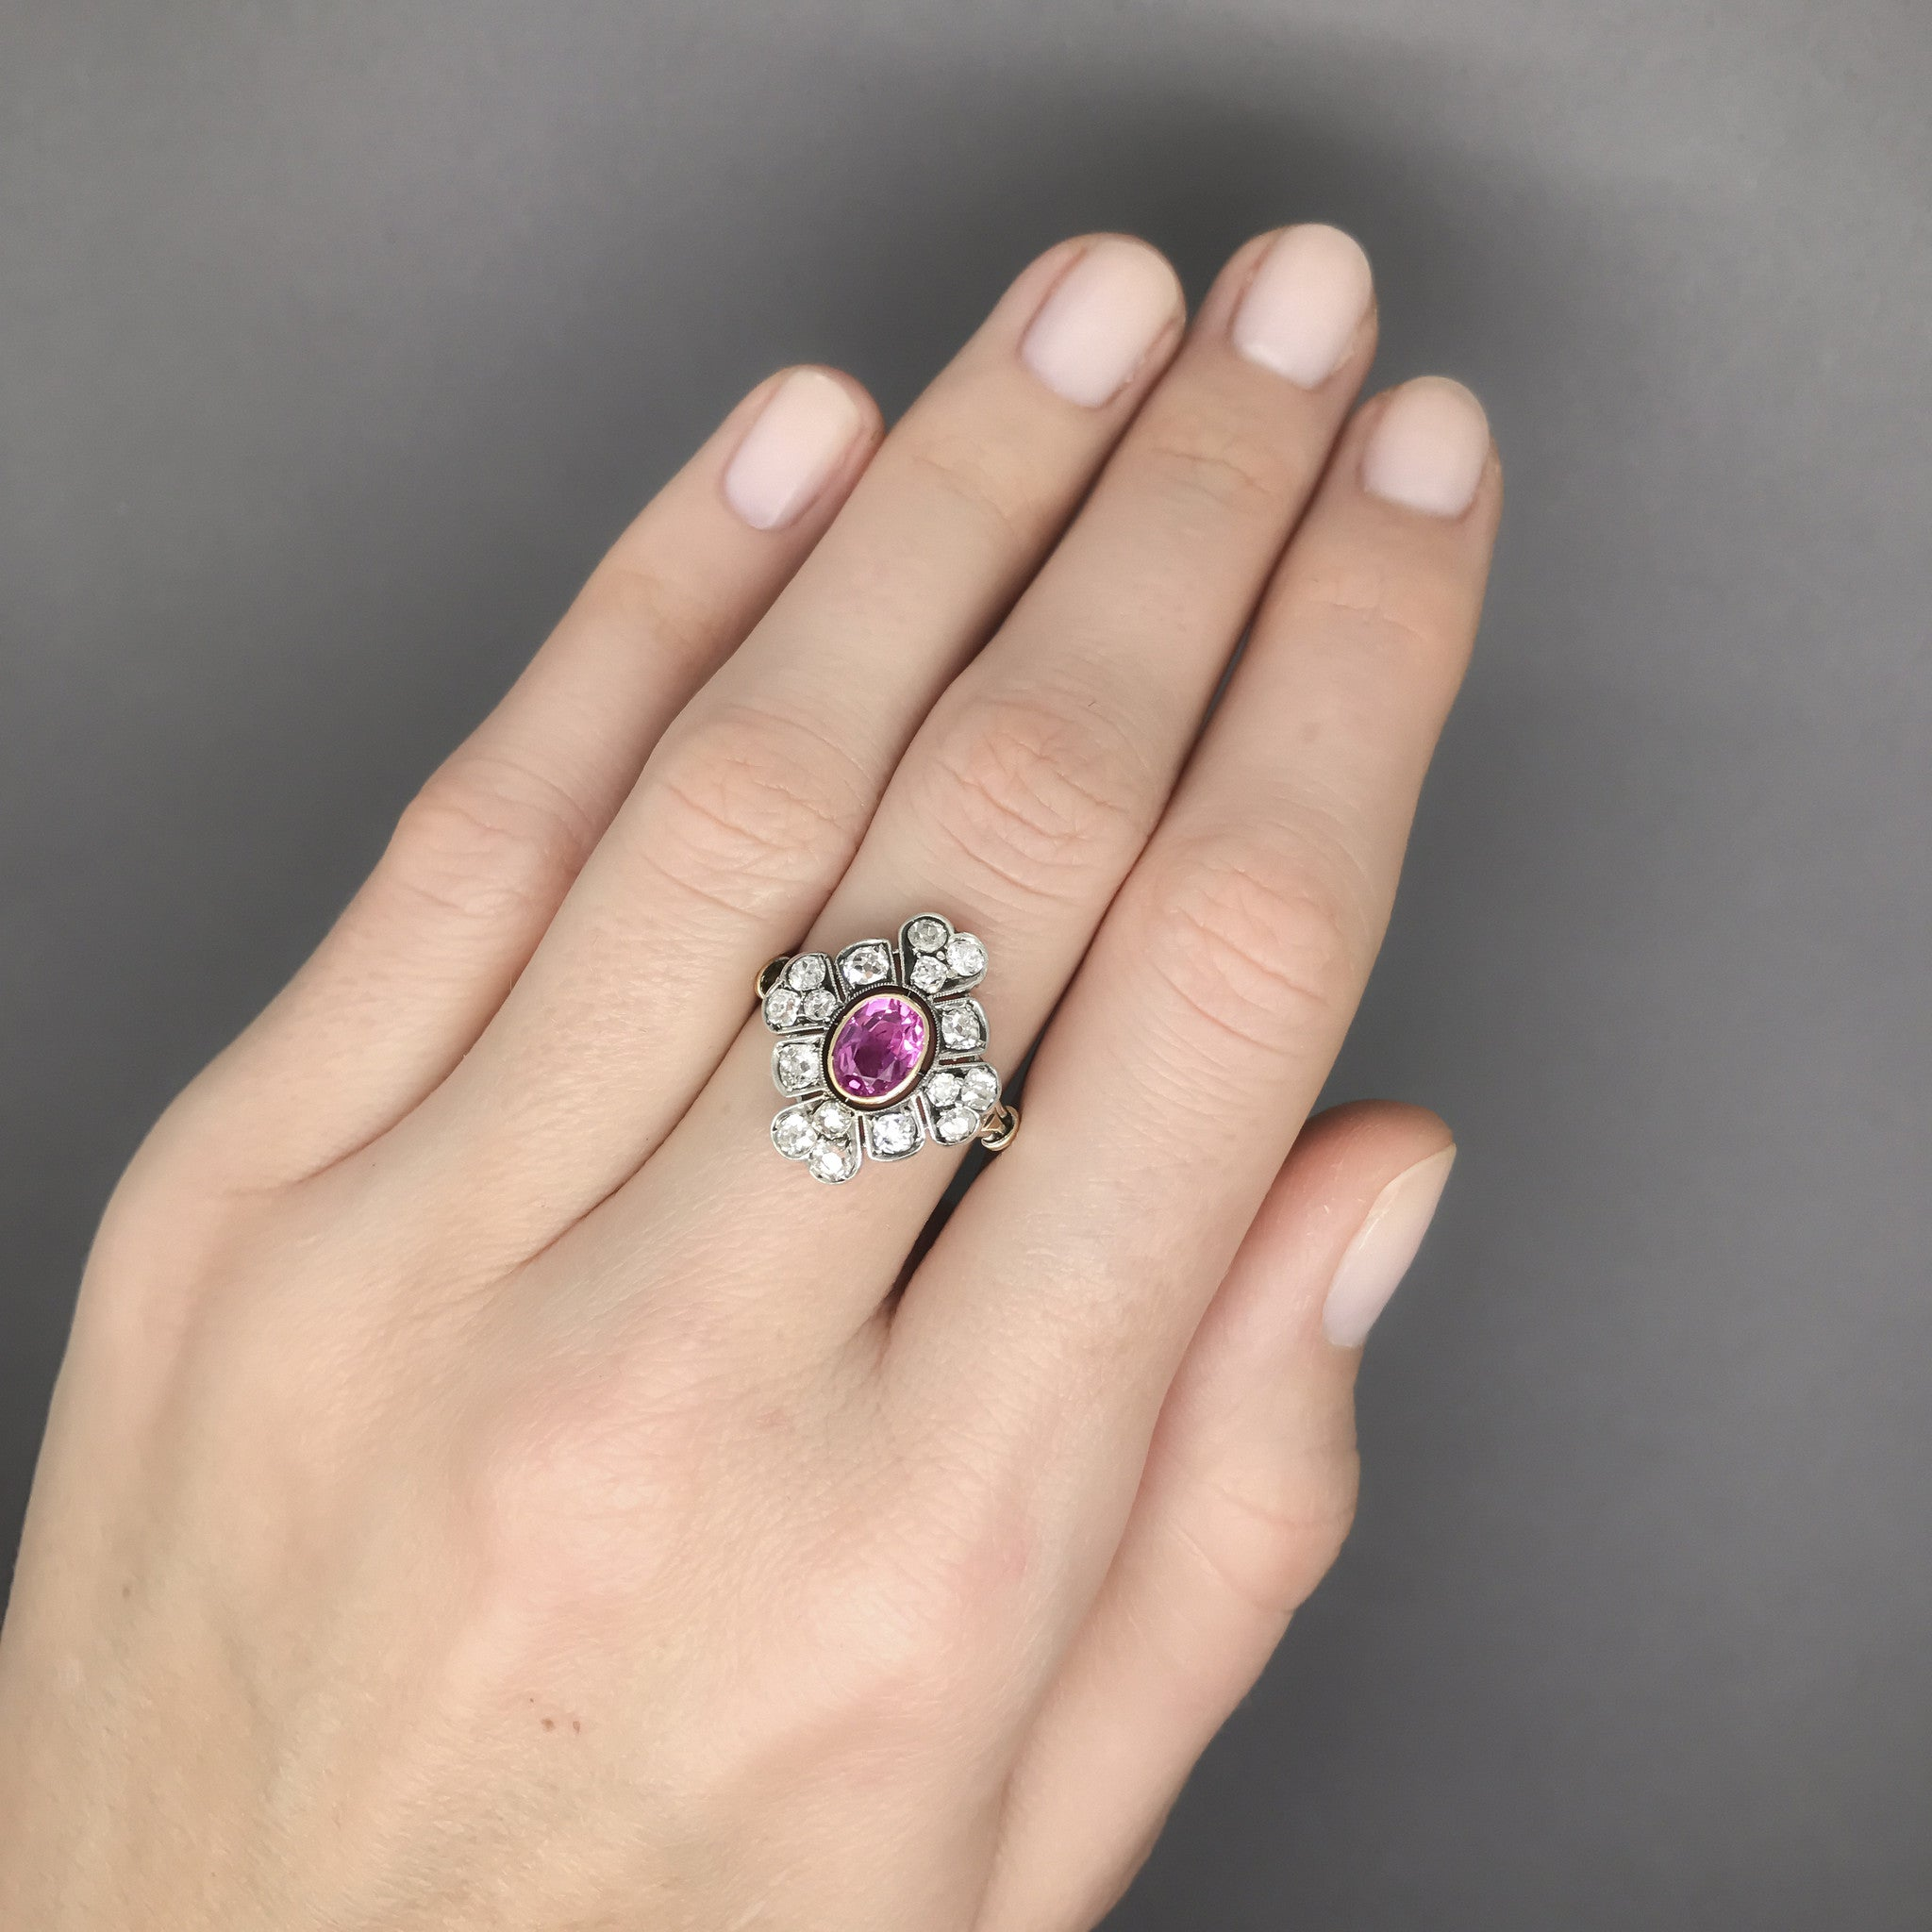 pin ring delivery pink engagement rings morganite and diamond stone